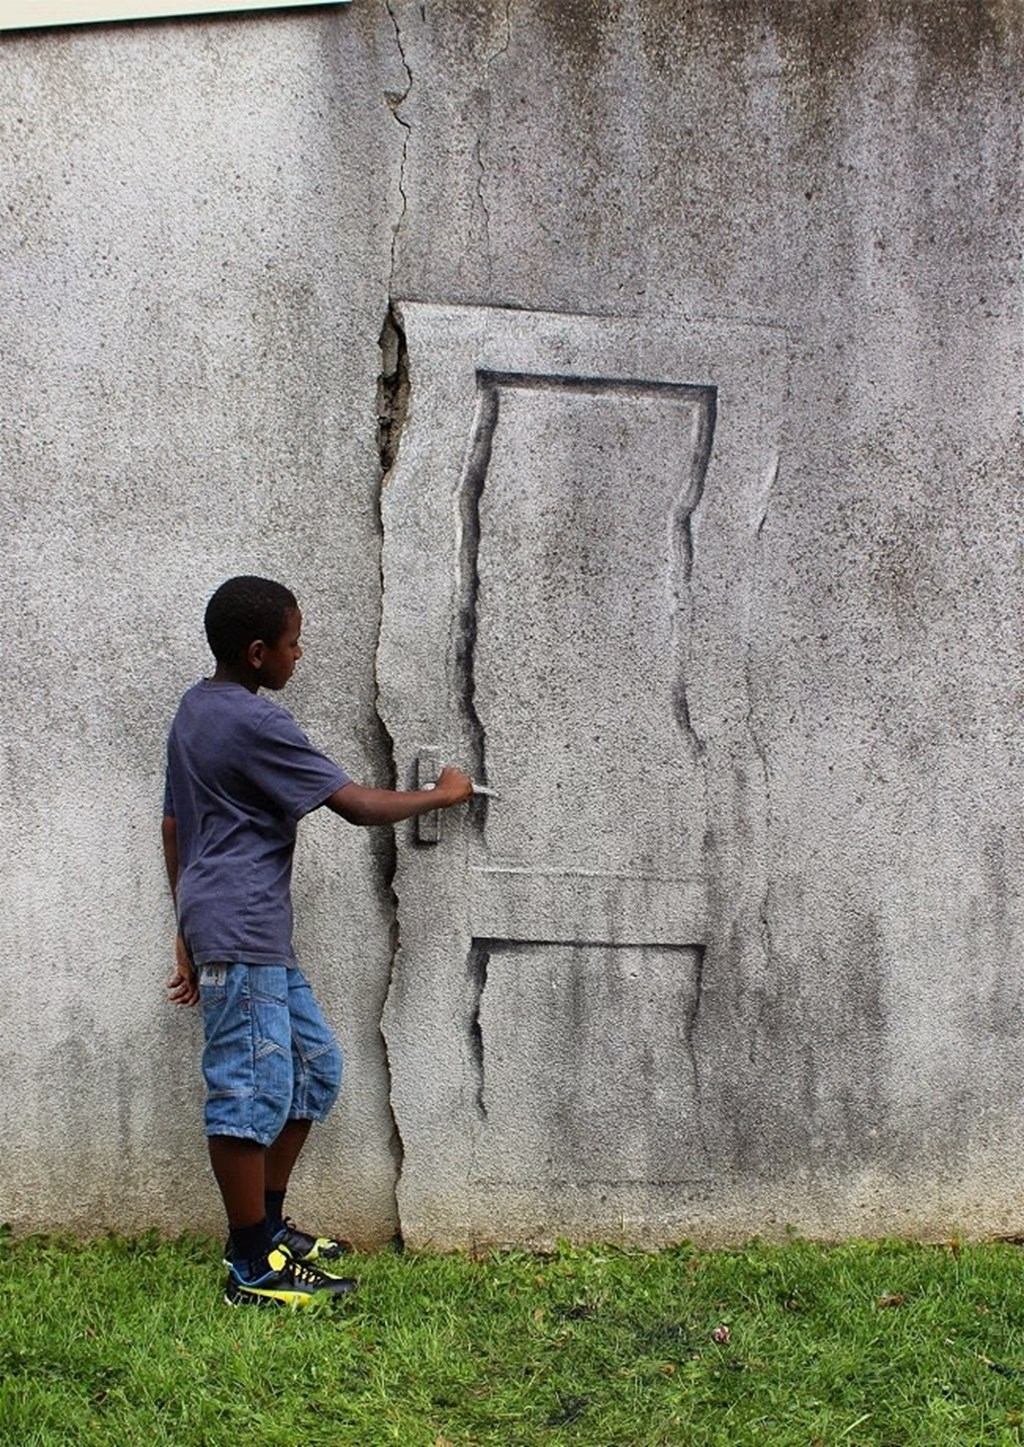 New Site Specific Paintings By Pejac 9